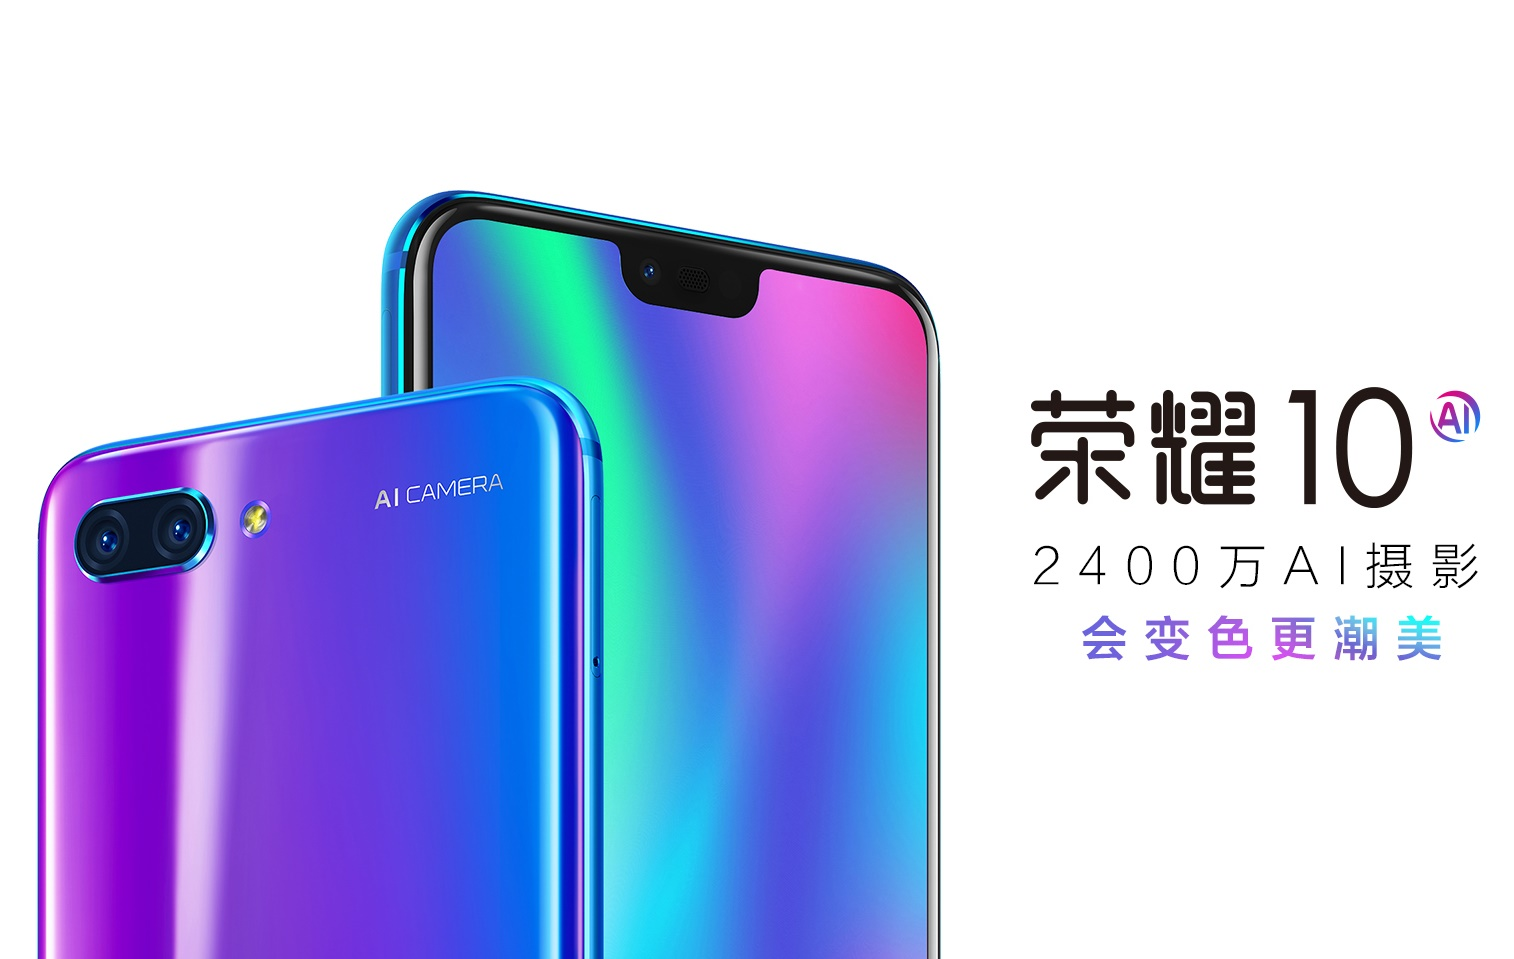 Honor 10 India Found on May 1-5, Reveals Flipkart